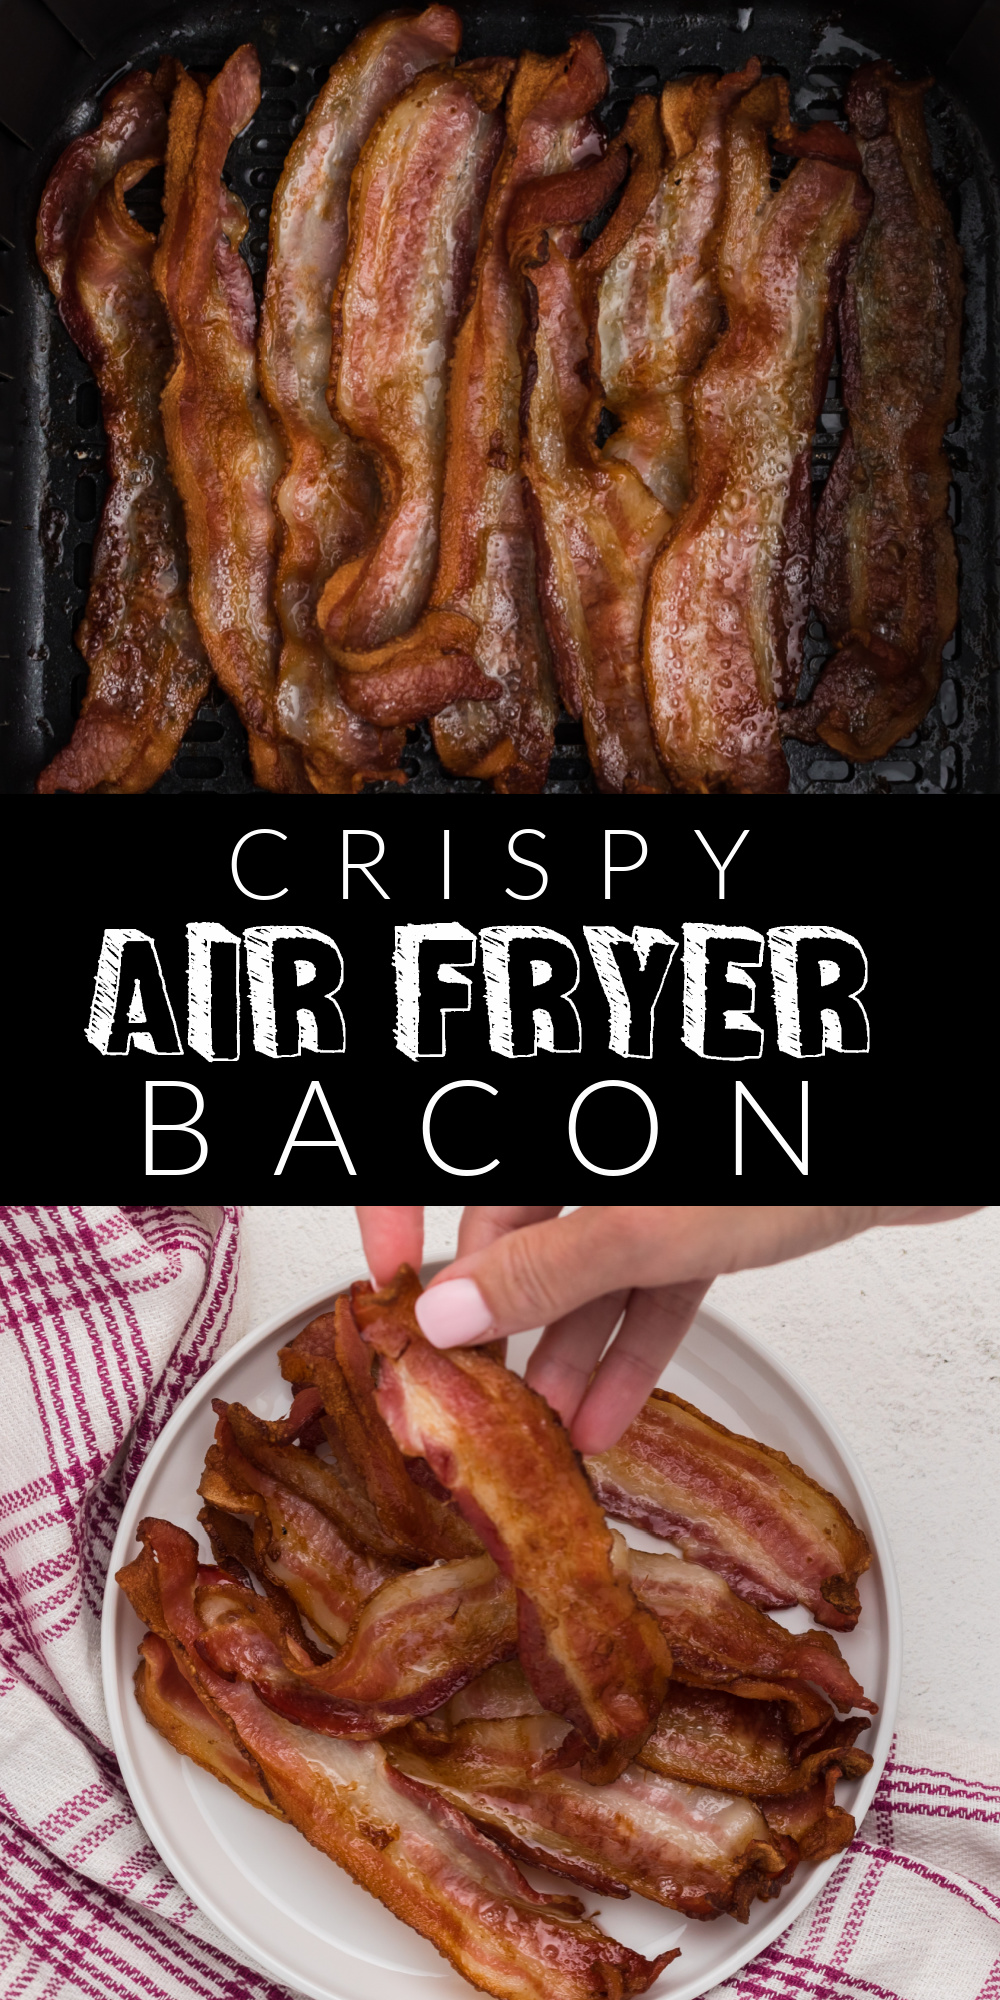 One of my new favorite ways to make crispy bacon is to make it in my Air Fryer. You'll enjoy delicious, perfect, bacon without the stress or the mess. Check out how easy it is to make Air Fryer Bacon.